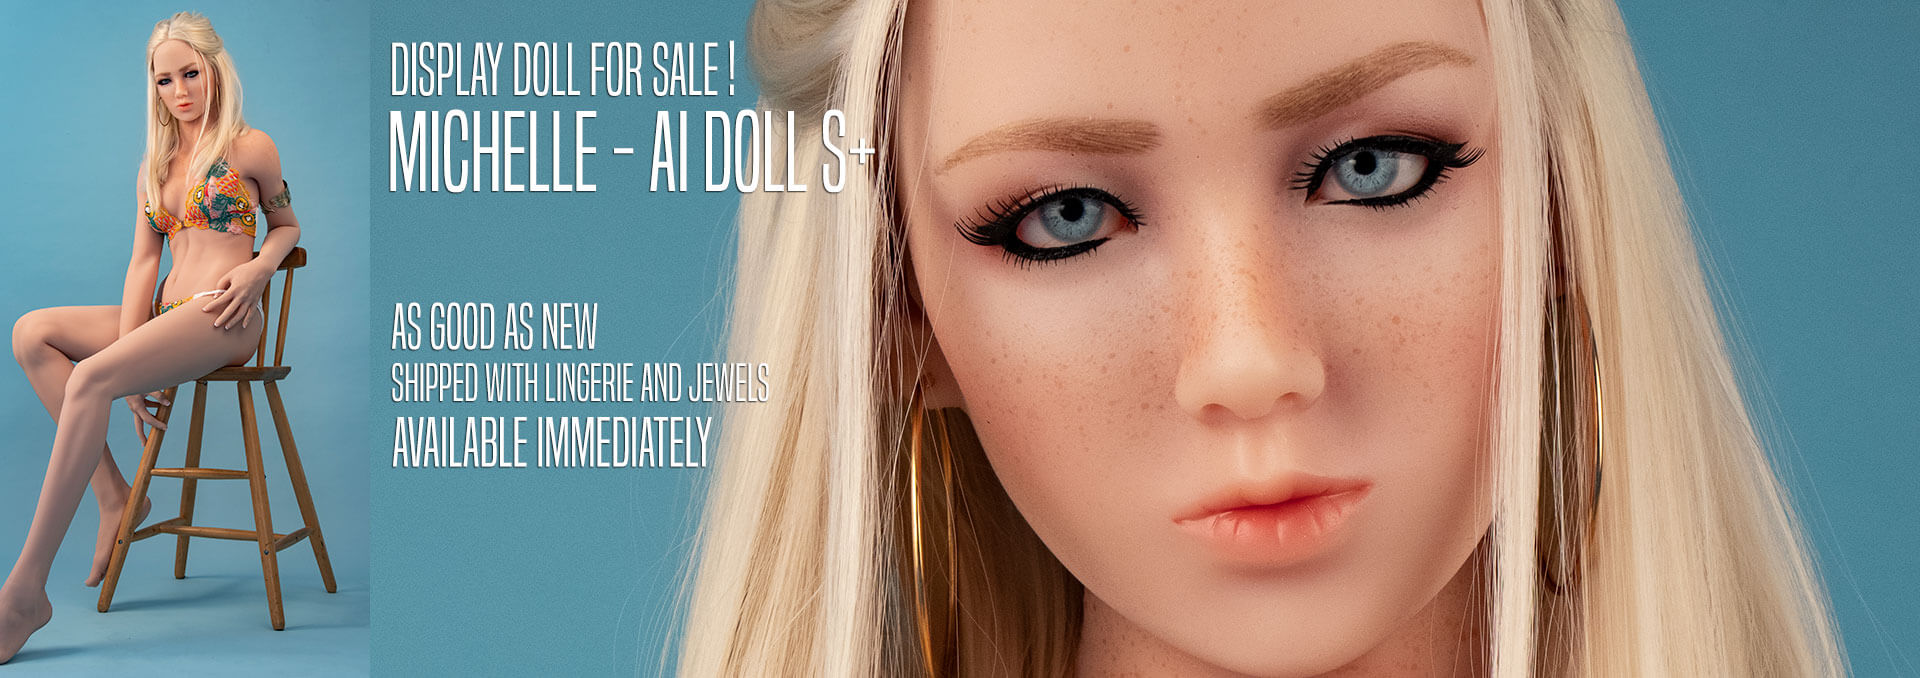 Display doll for sale